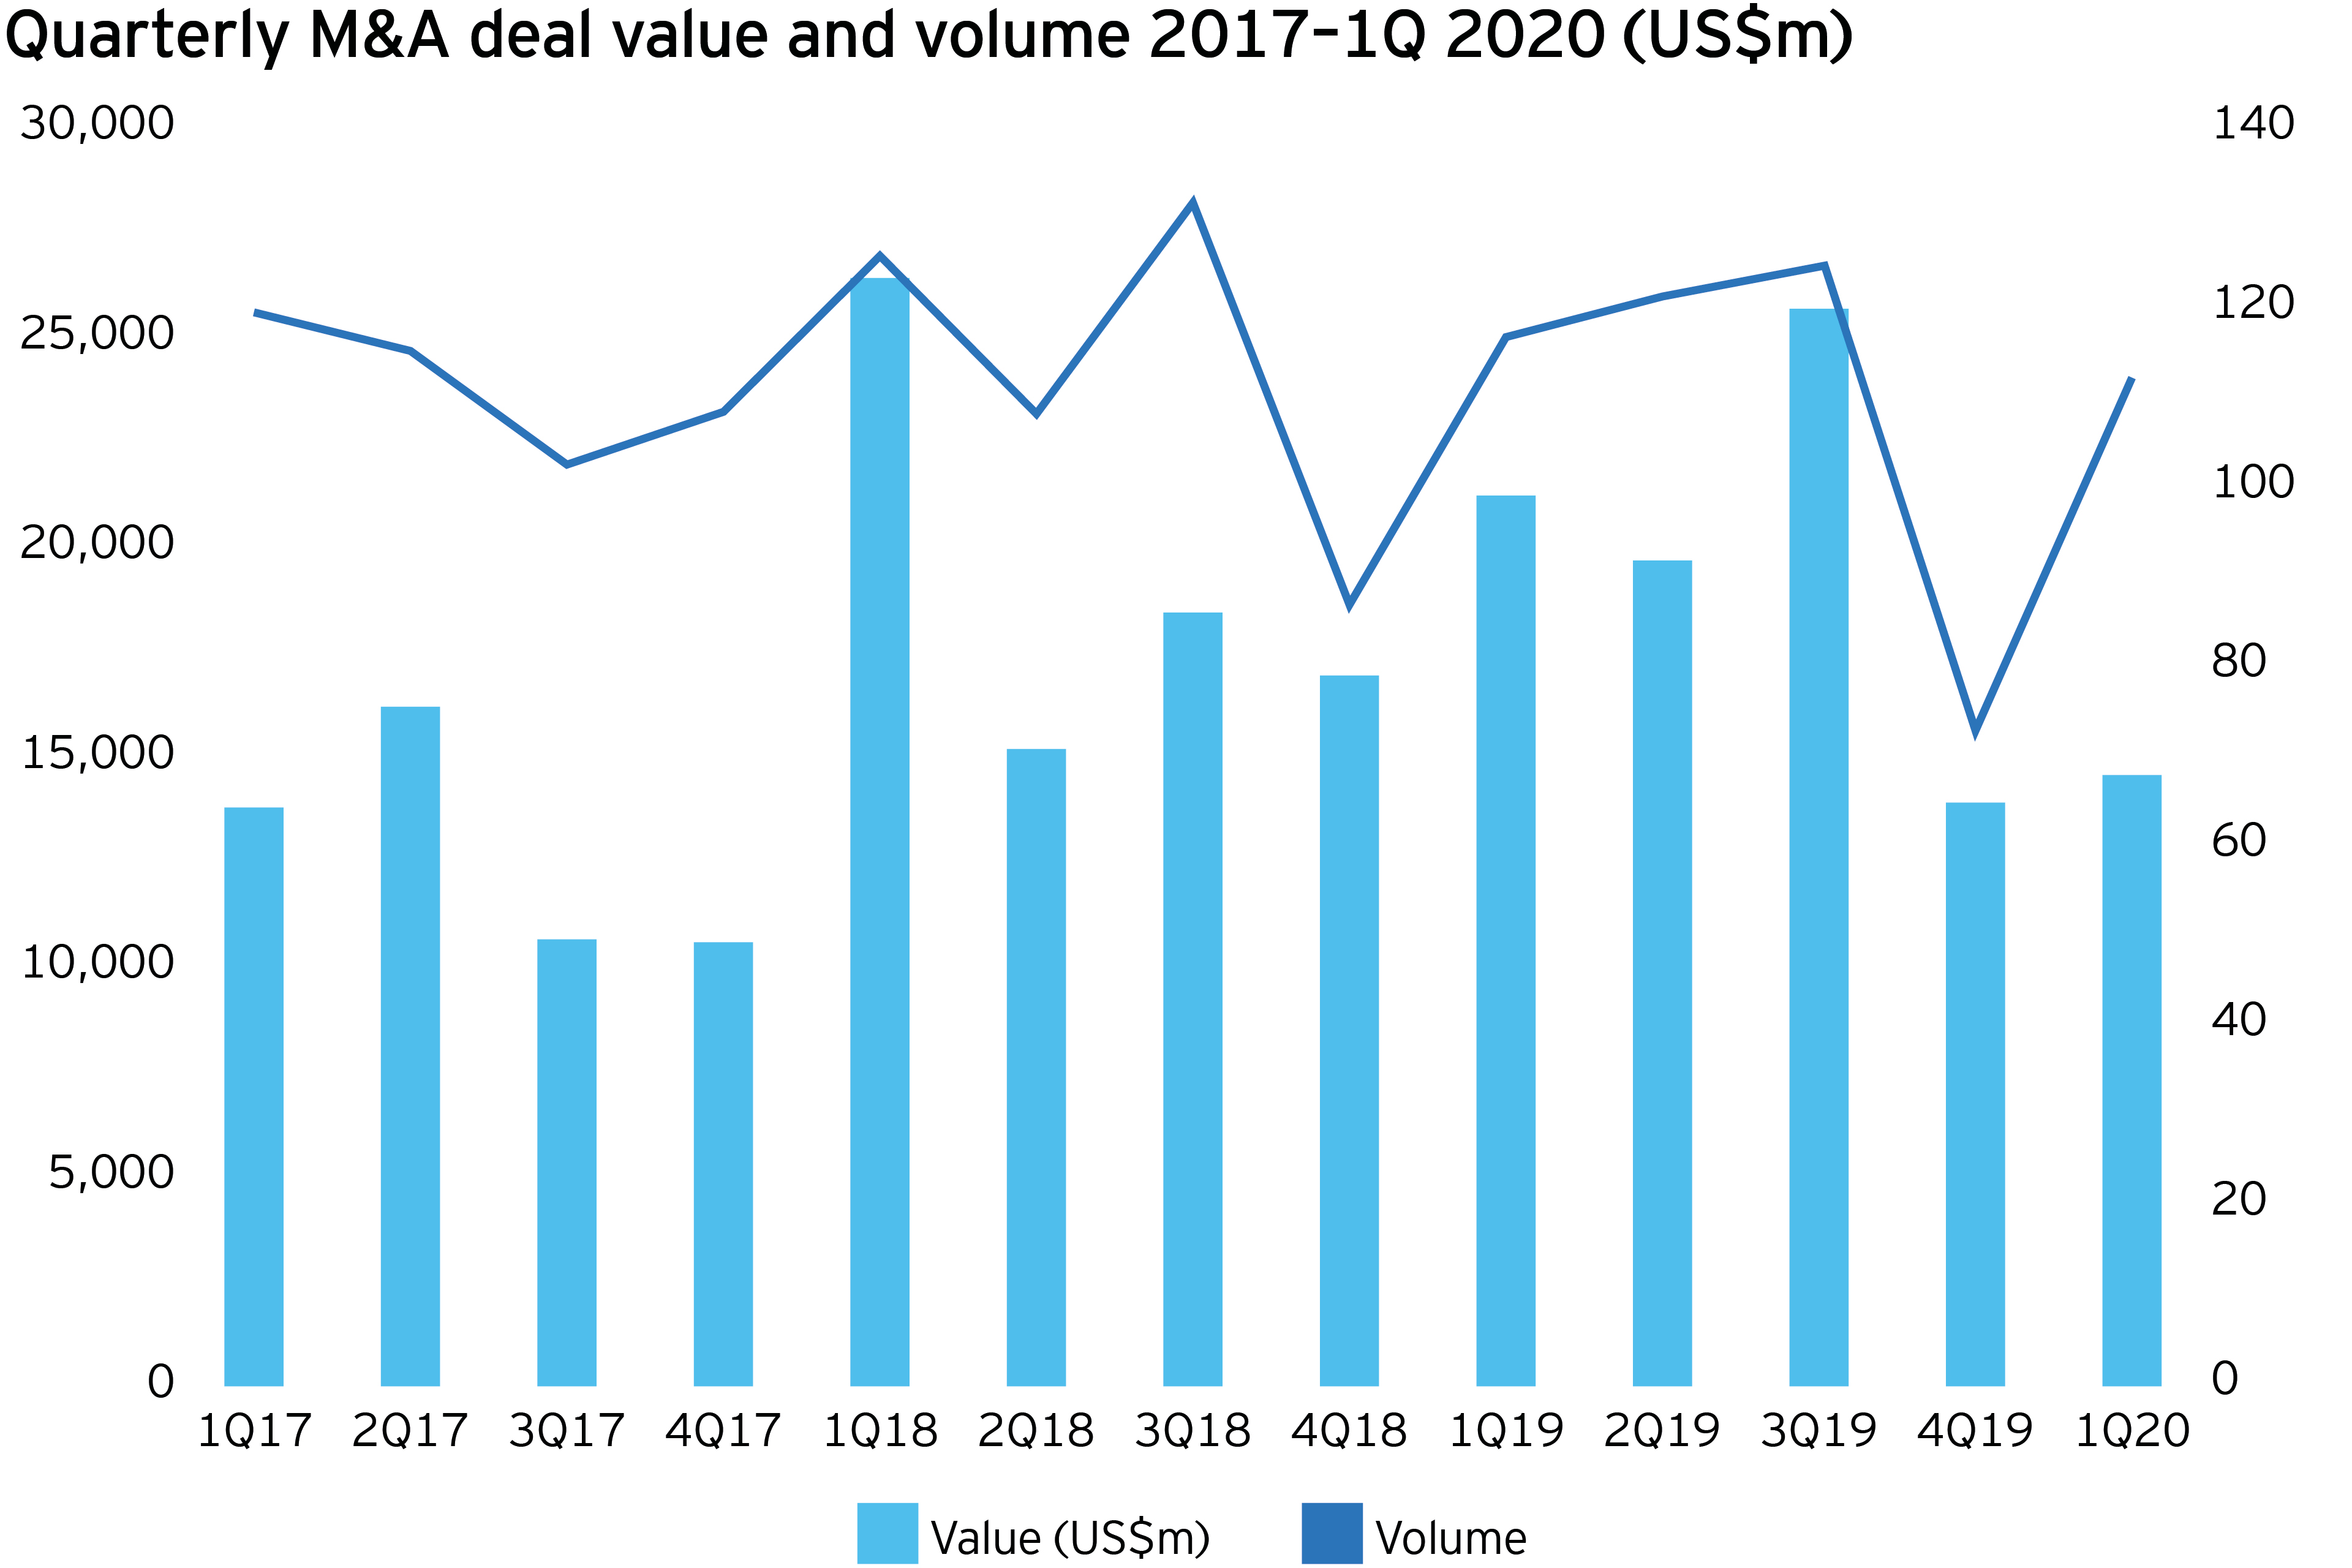 Mining and metals M&A deal value and volume 2017-1Q 2020